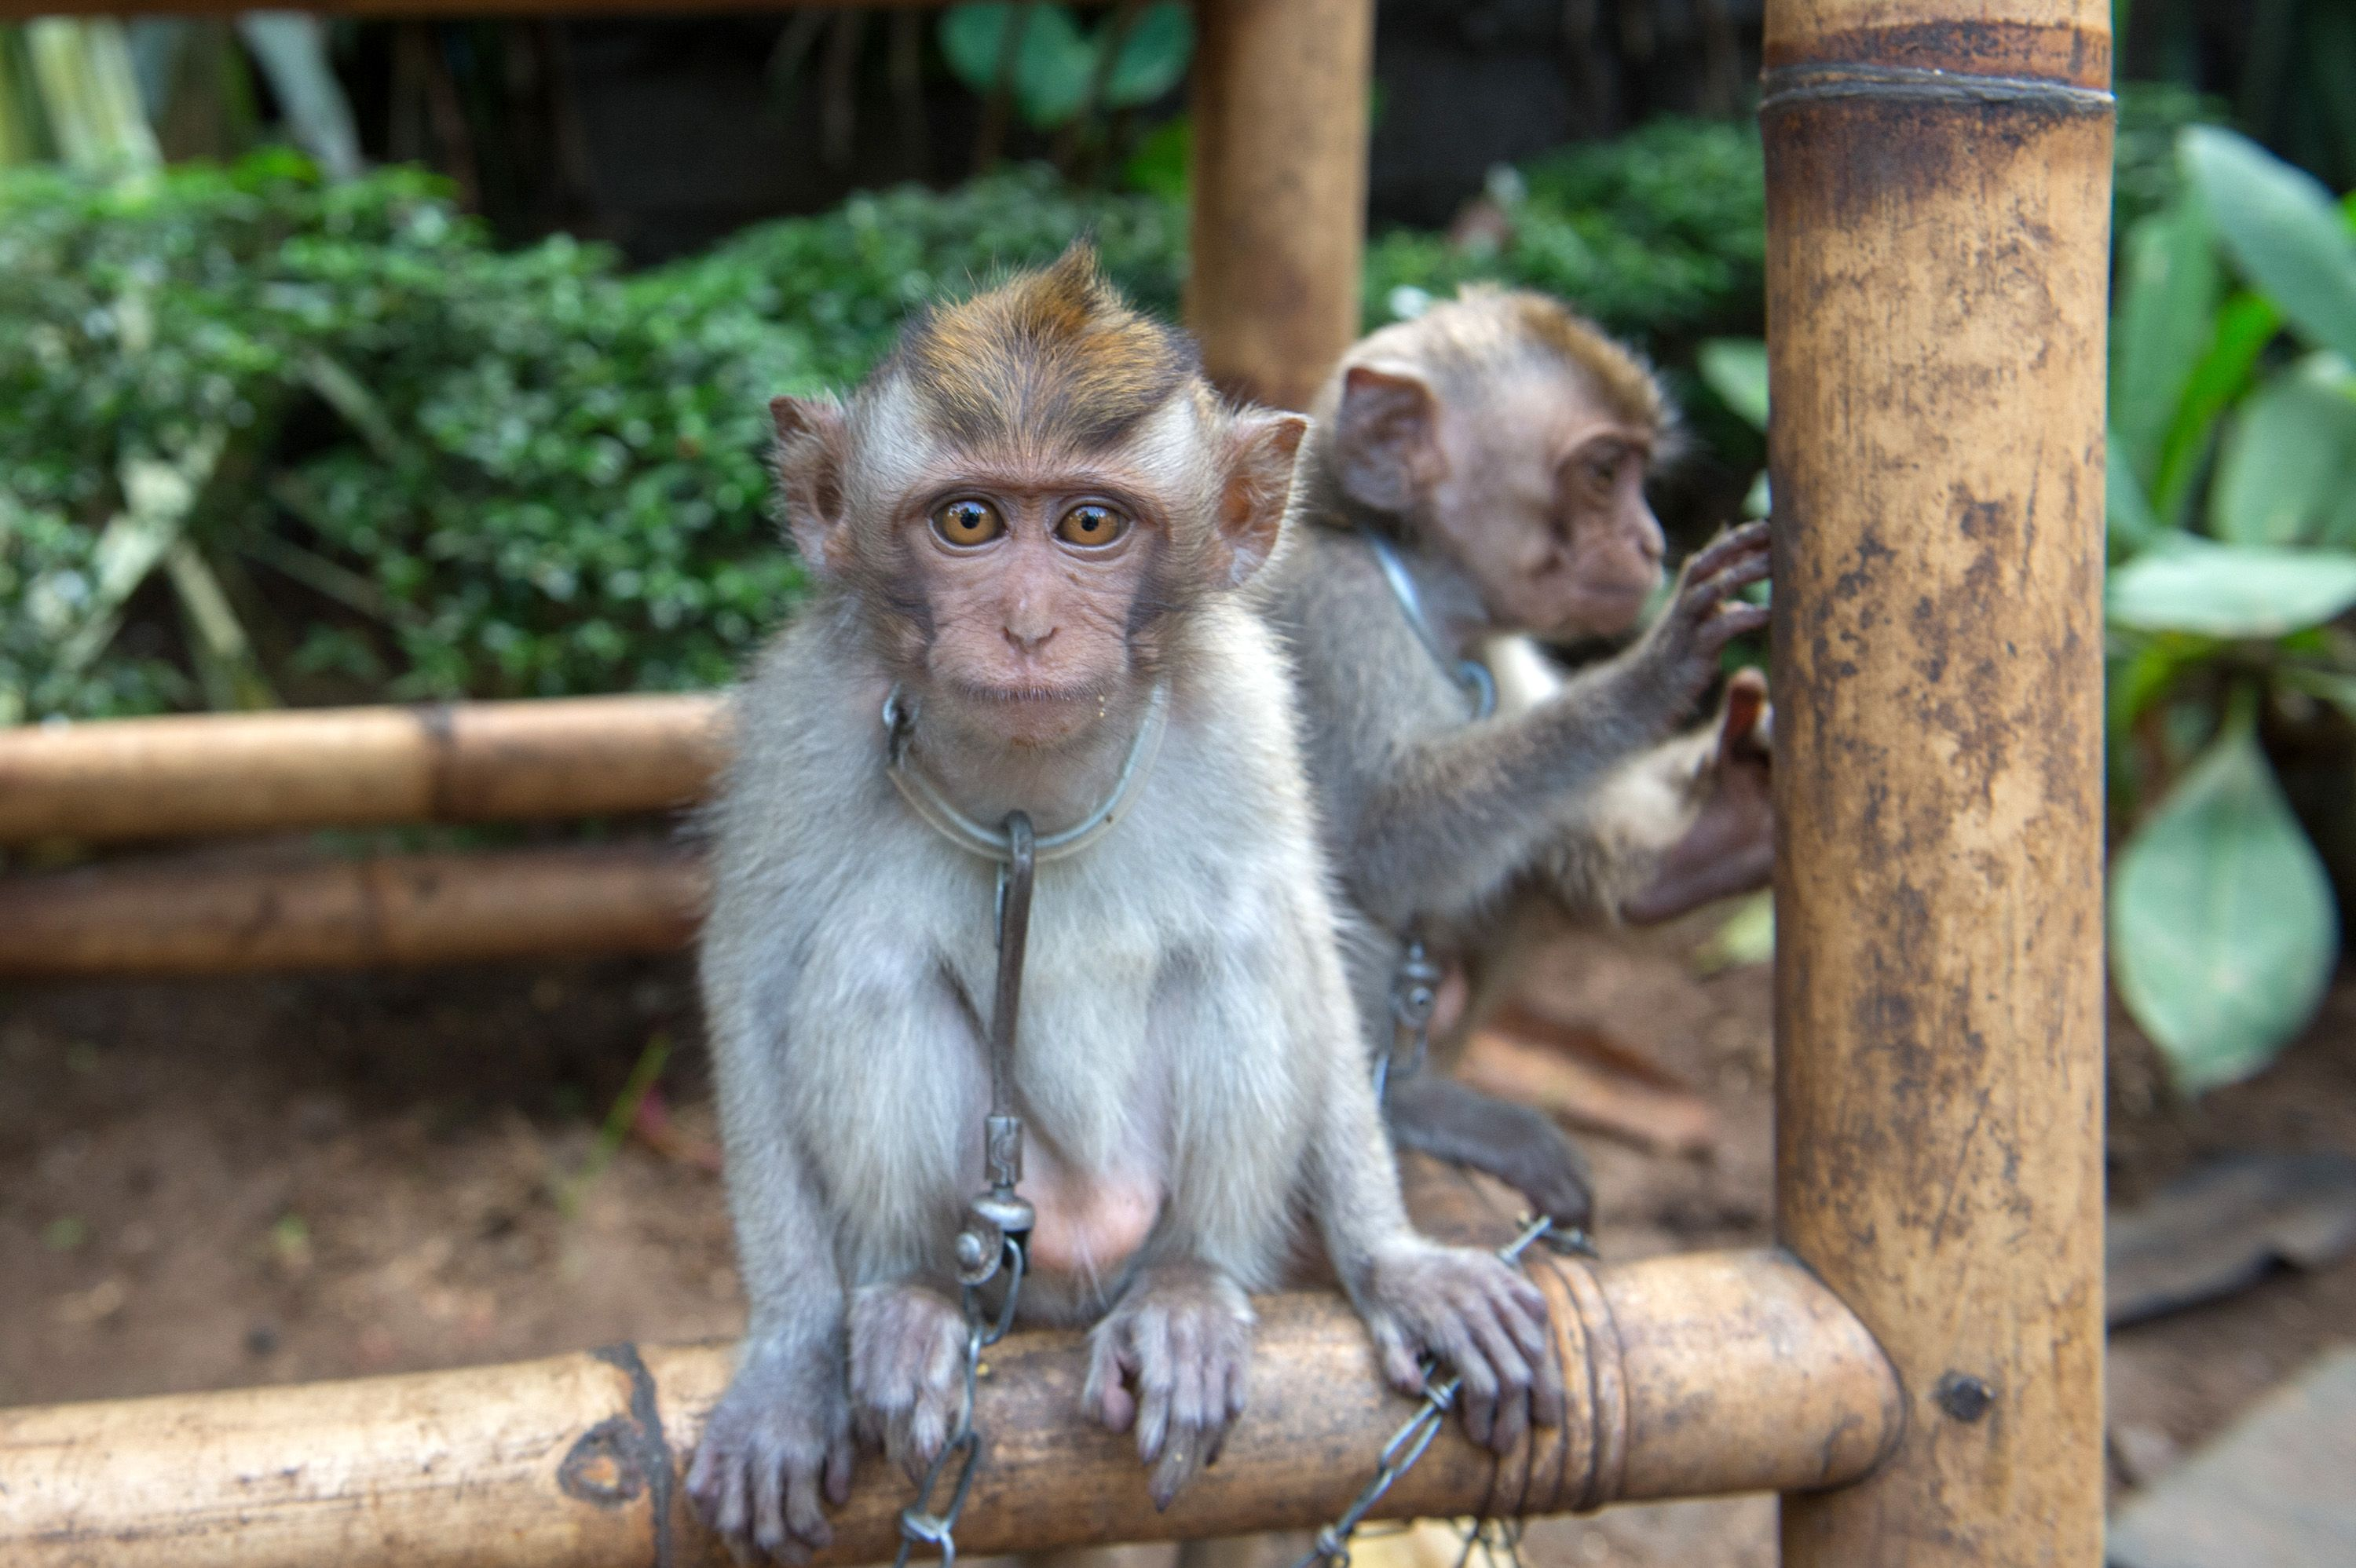 Report: Bali's Tourism Industry is Torturing Animals